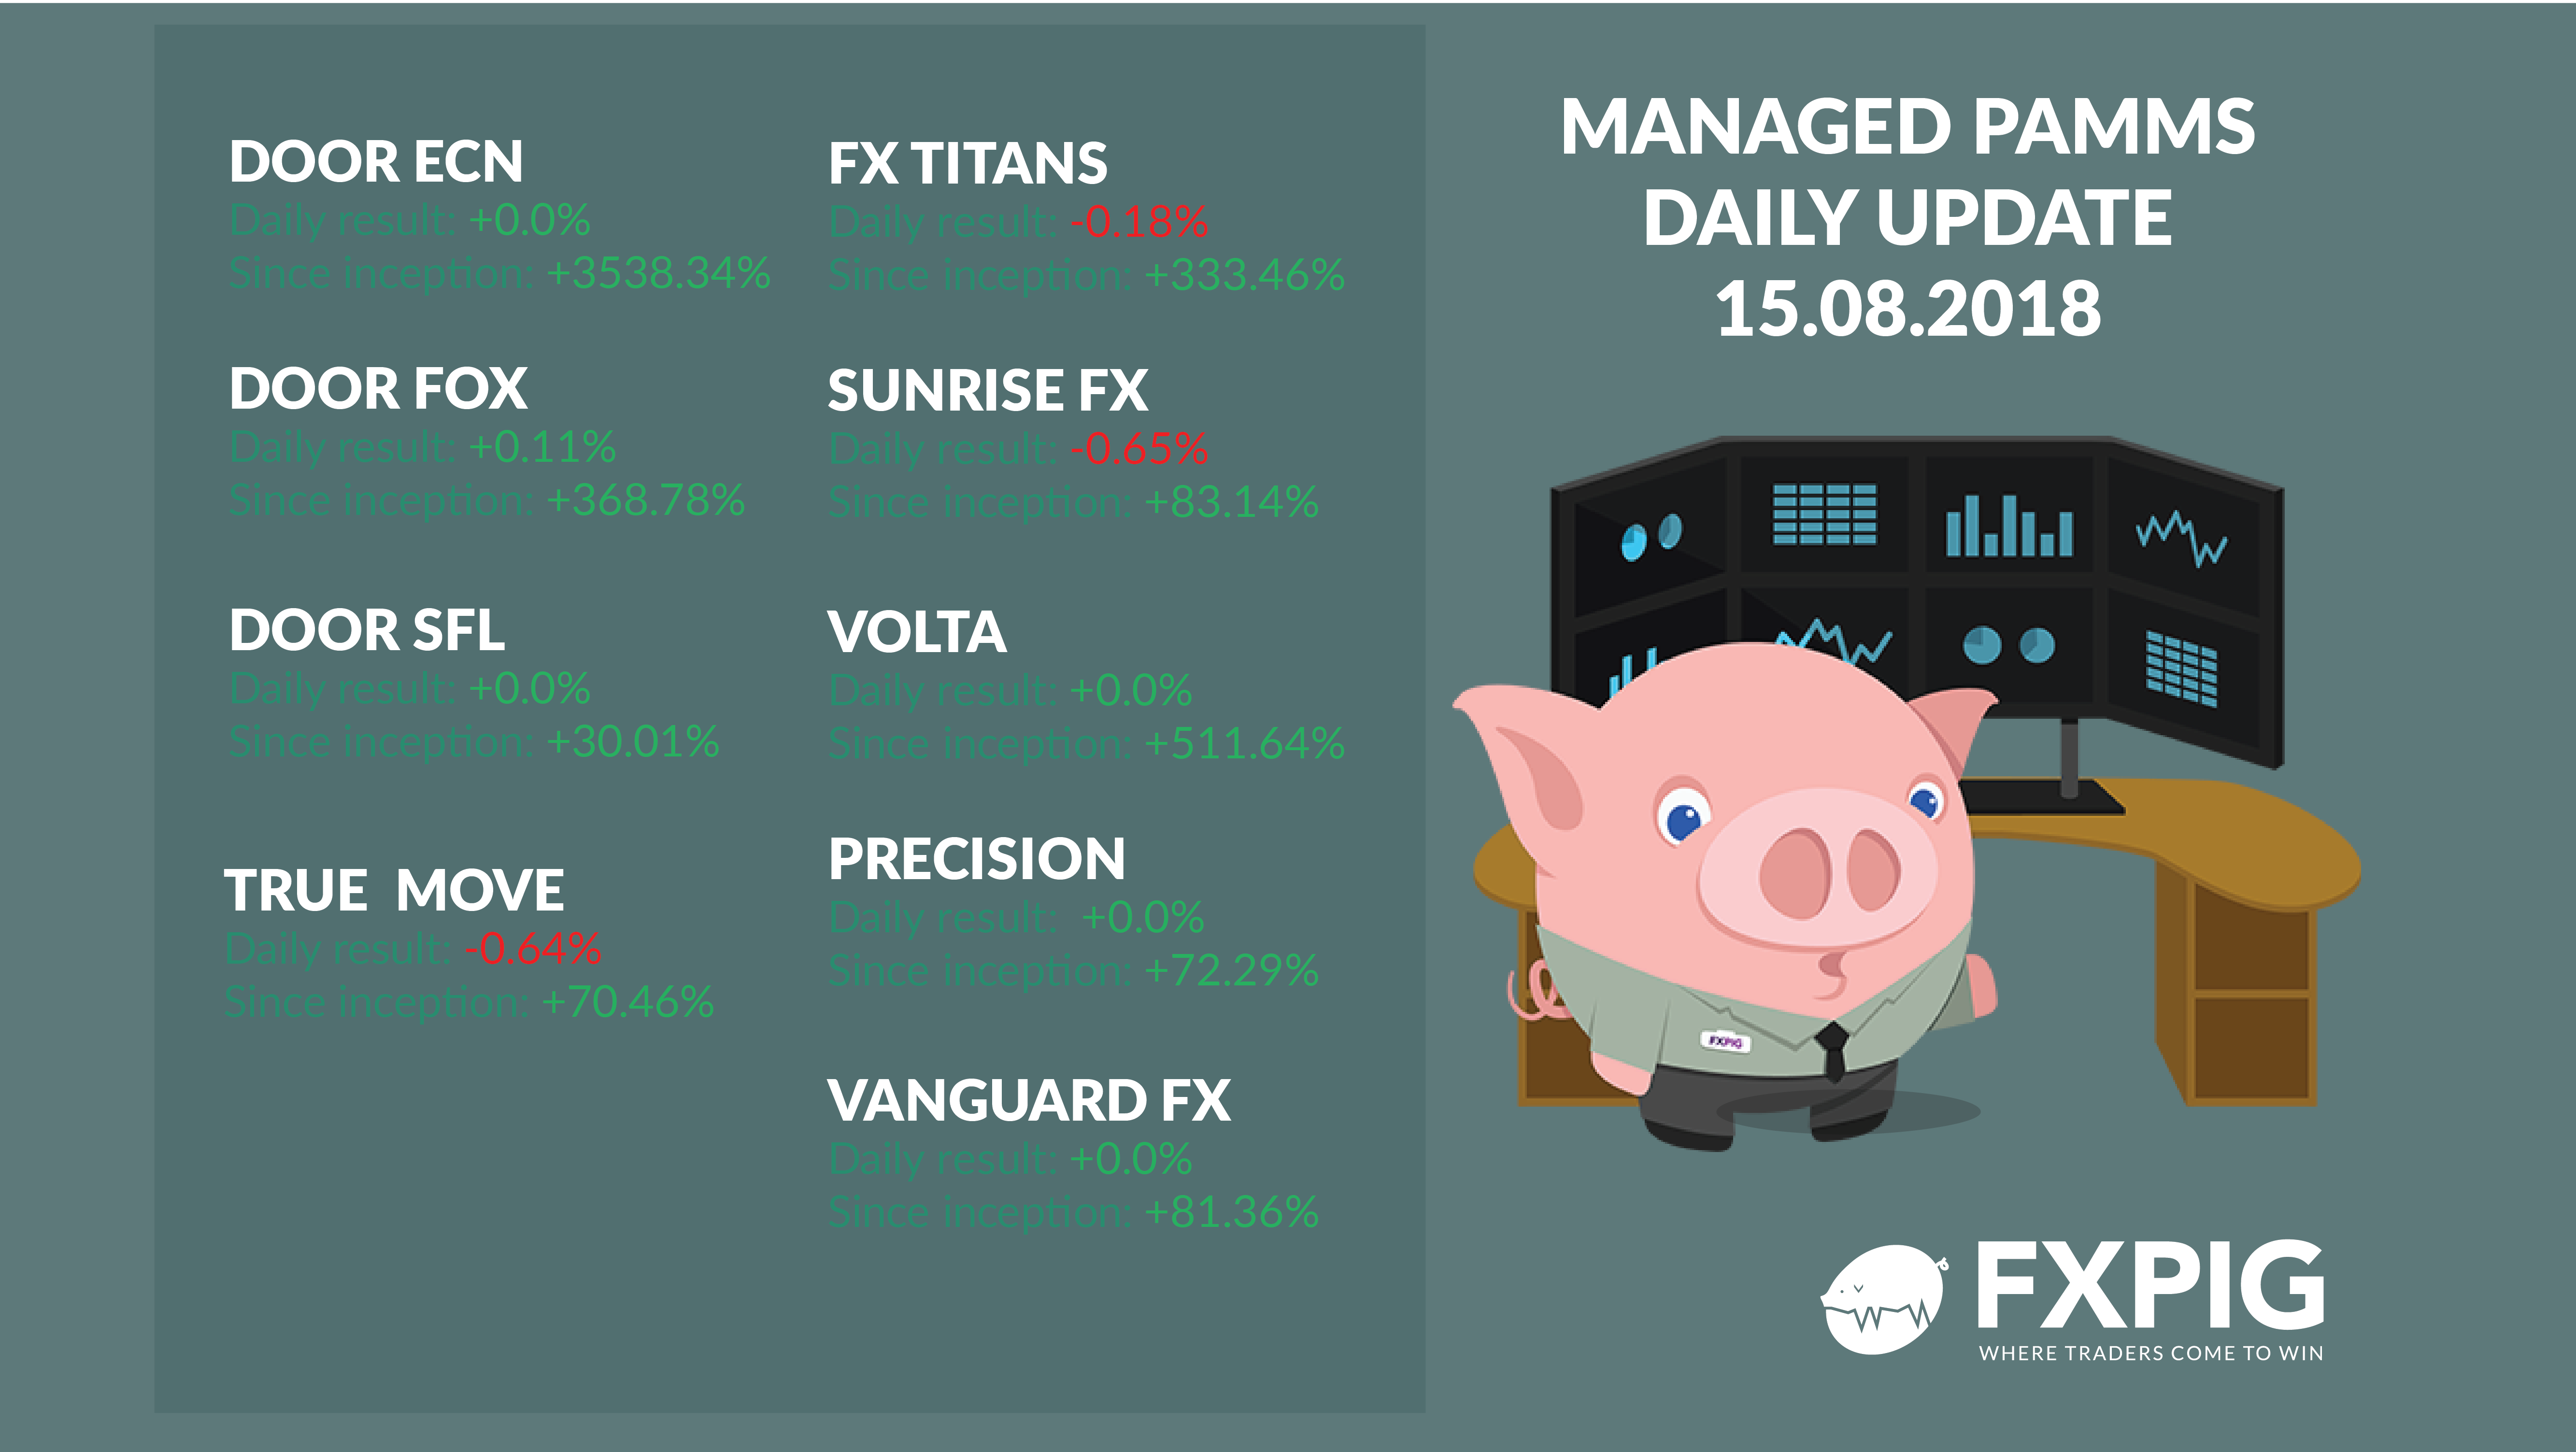 FOREX_managed-daily-update1508_FXPIG